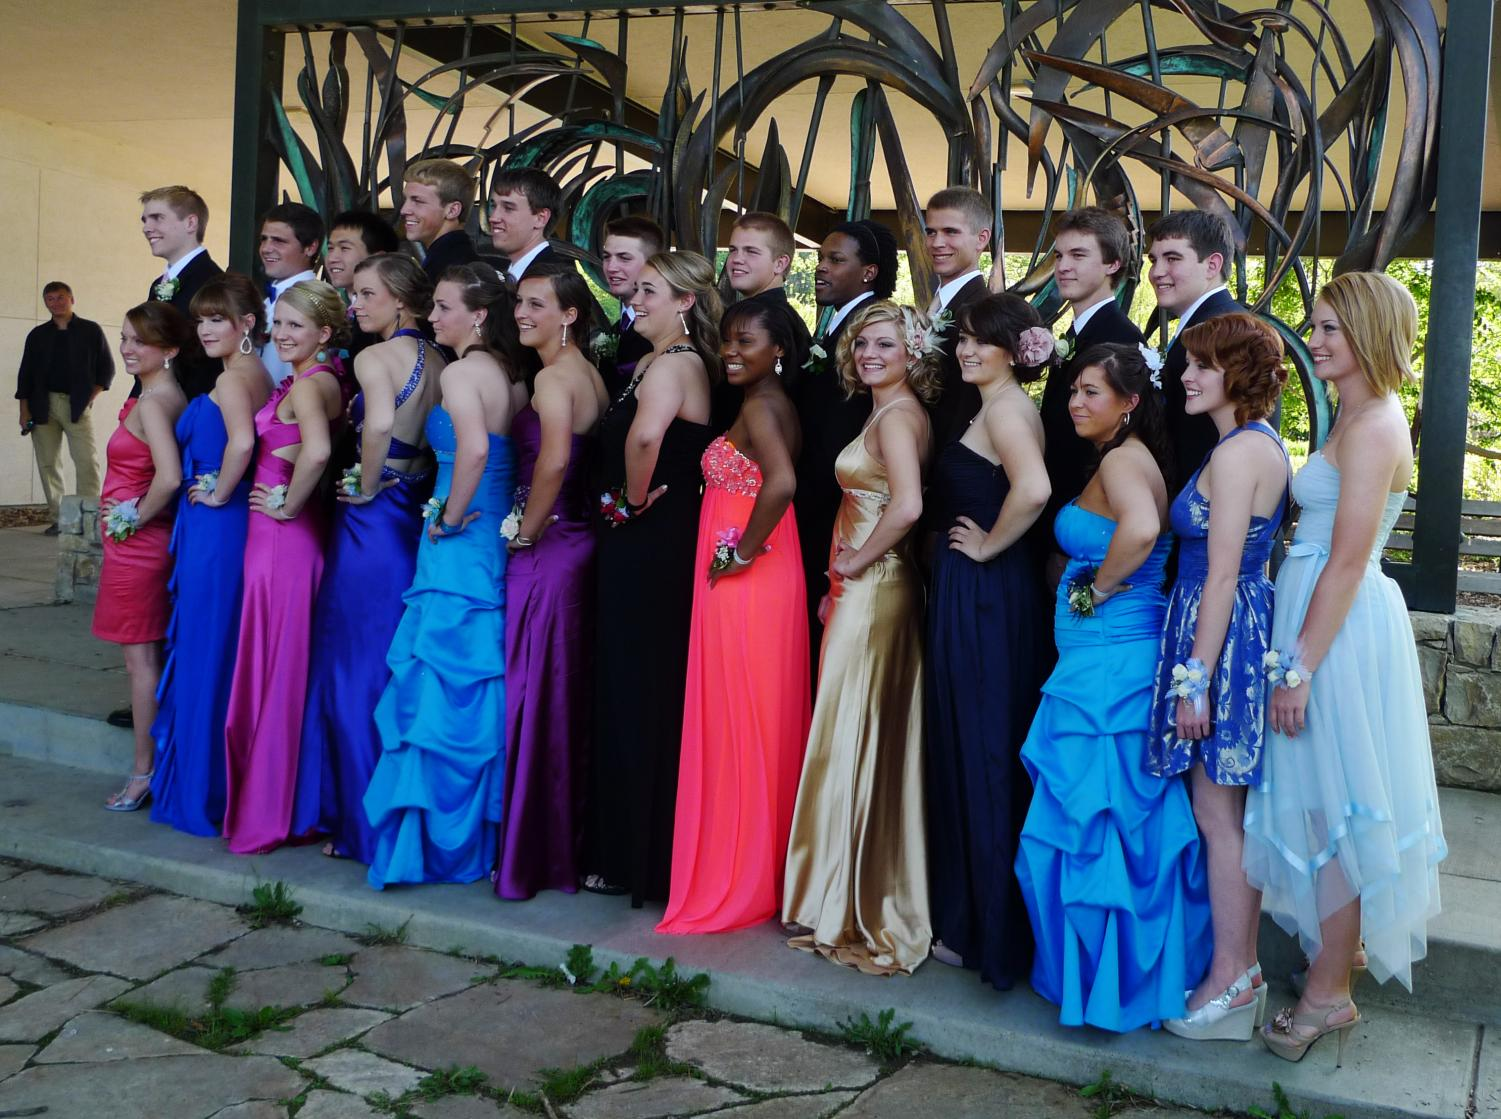 Statistics have shown that prom attendance in the Southern United States is the highest it has been with 76% of teens reporting that they will attend the end of year celebration for upper-classmen. (Statistics credited to USA Today).